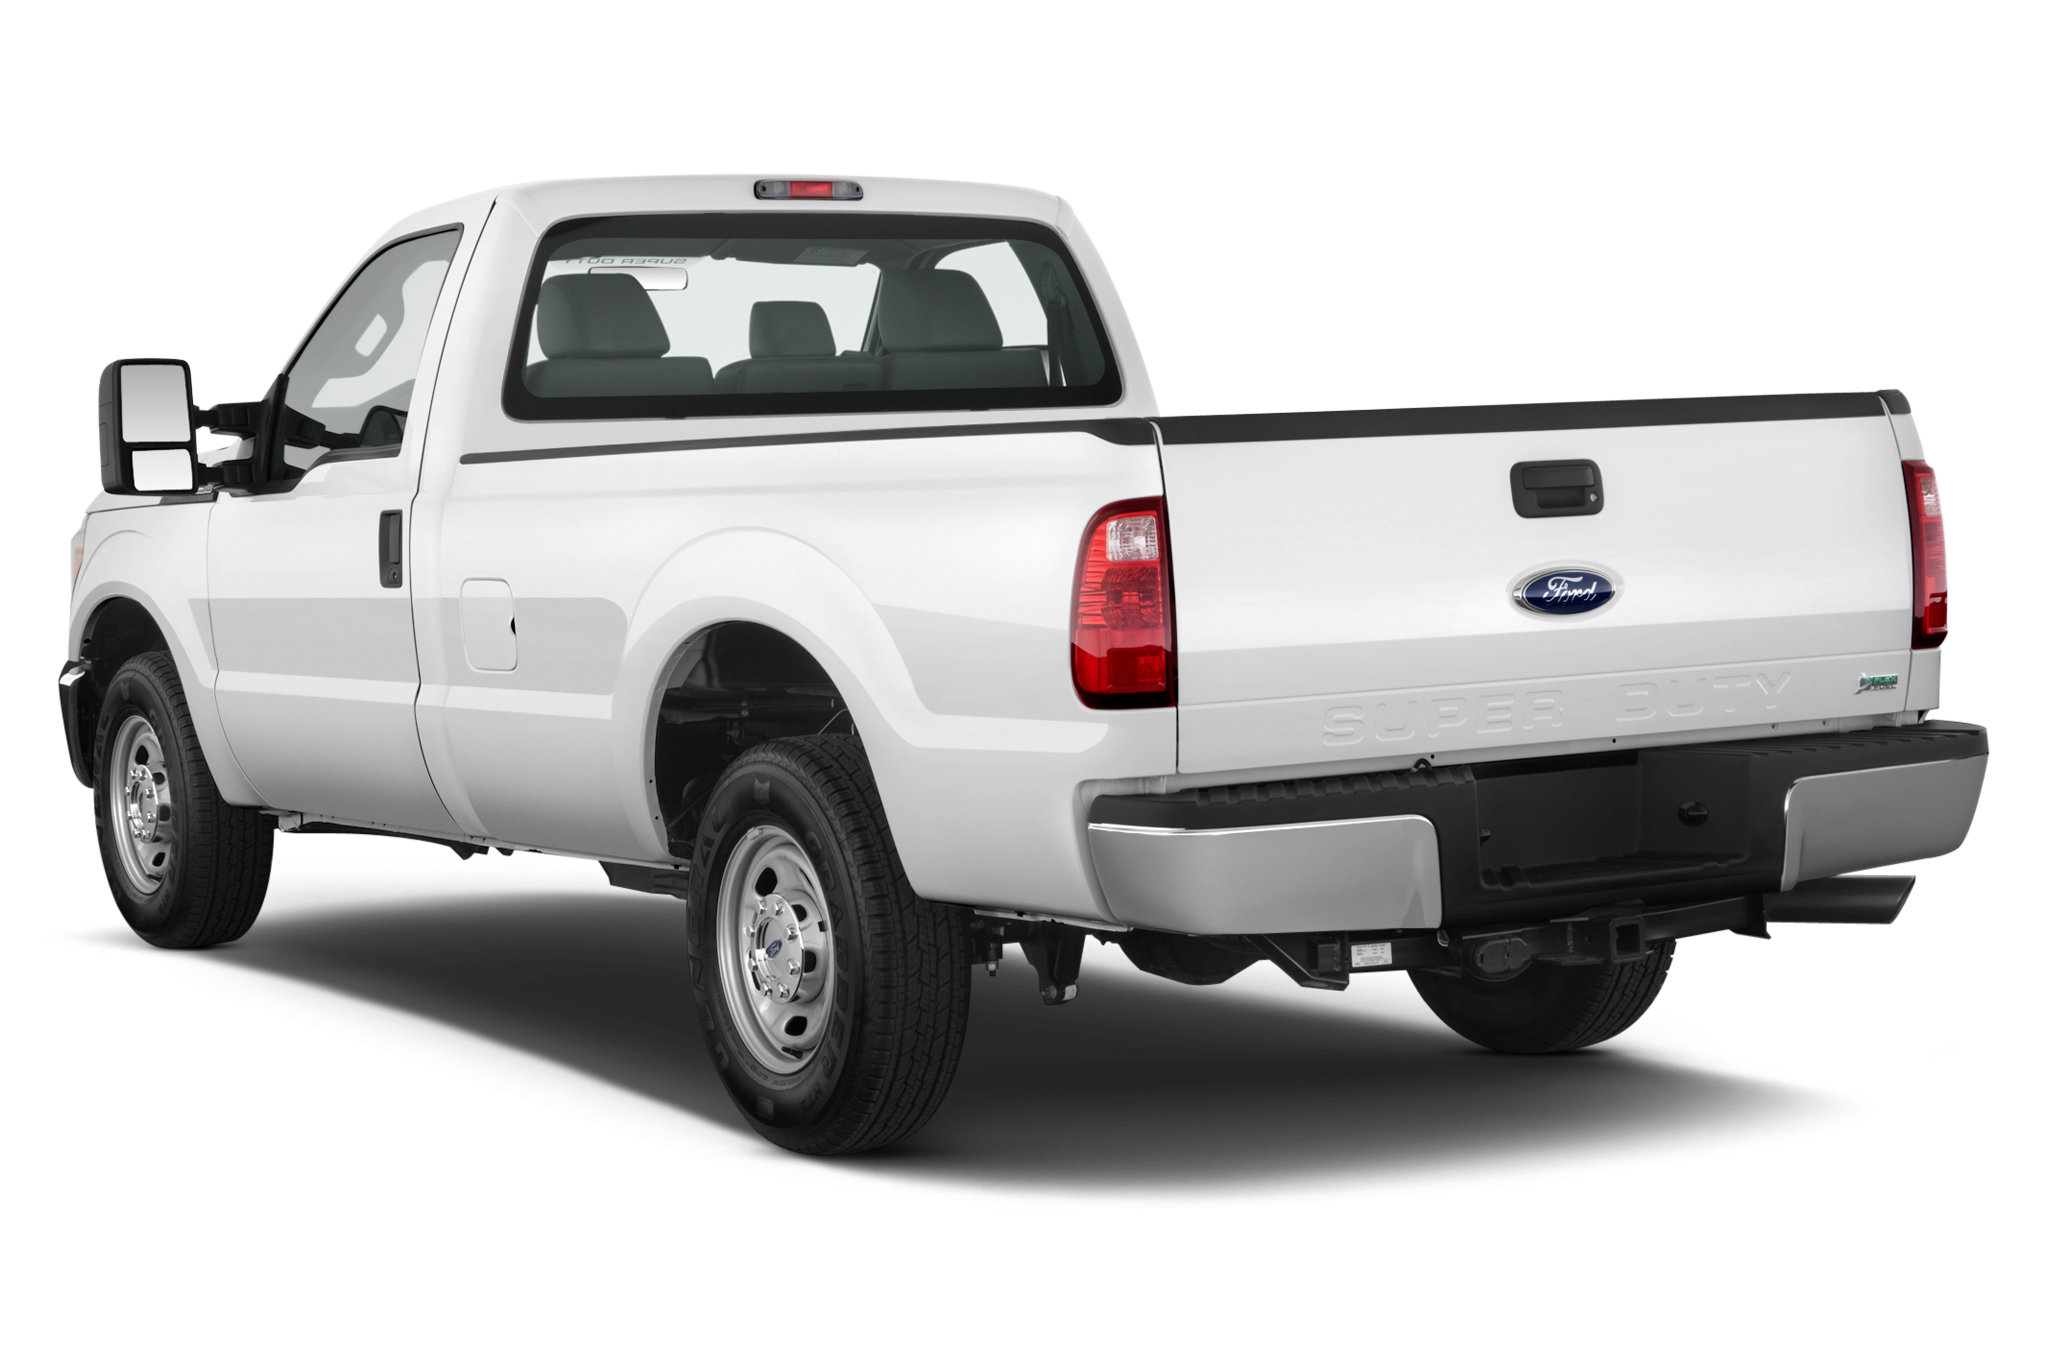 2013 Ford F Series Super Duty Platinum Fords Most Luxurious Truck 2000 F250 46 99